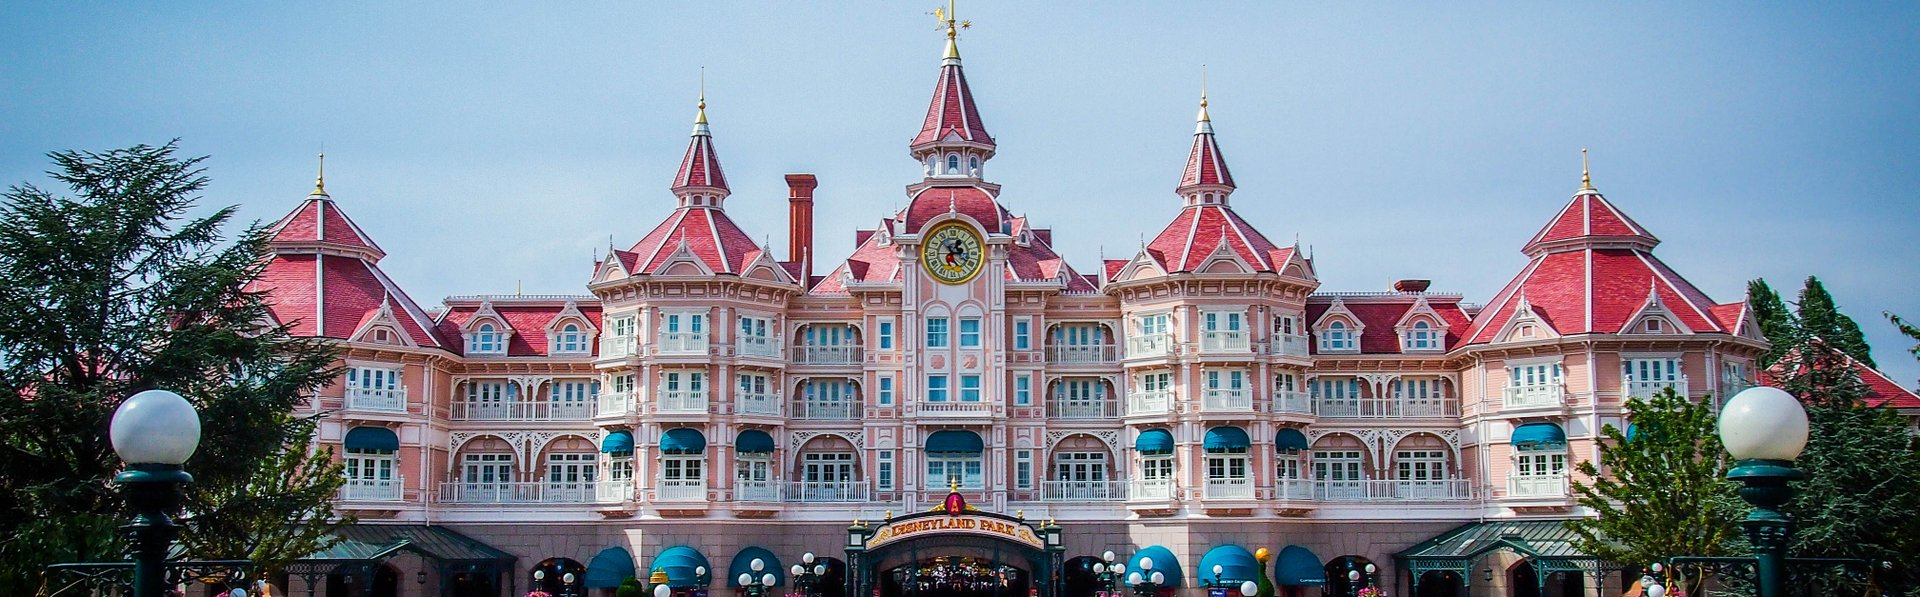 Disneyland Hotel, Disneyland Paris by Holiday Hamster